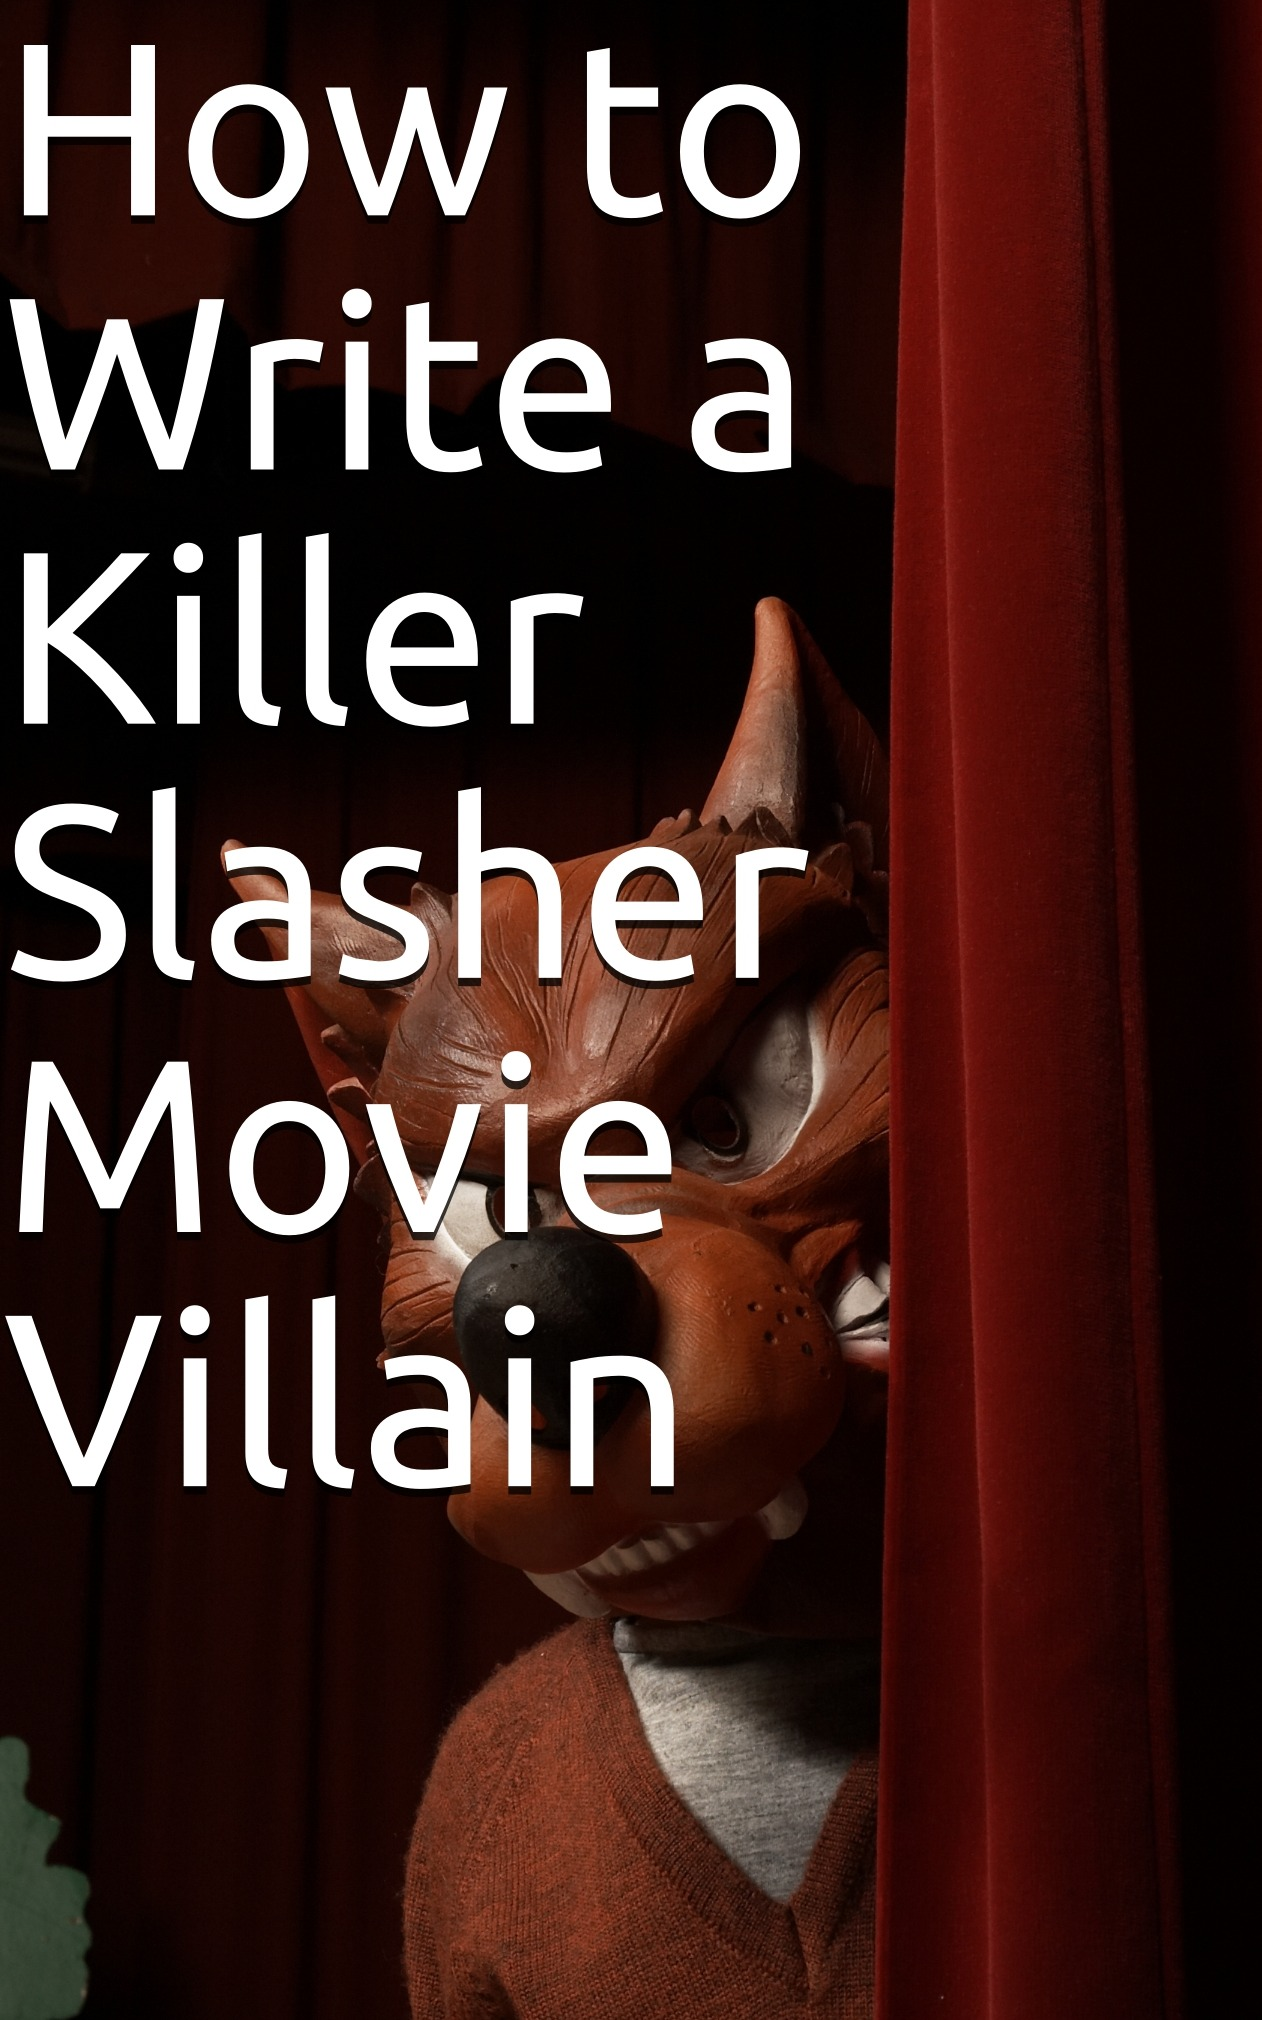 How to Write a Killer Slasher Movie Villain